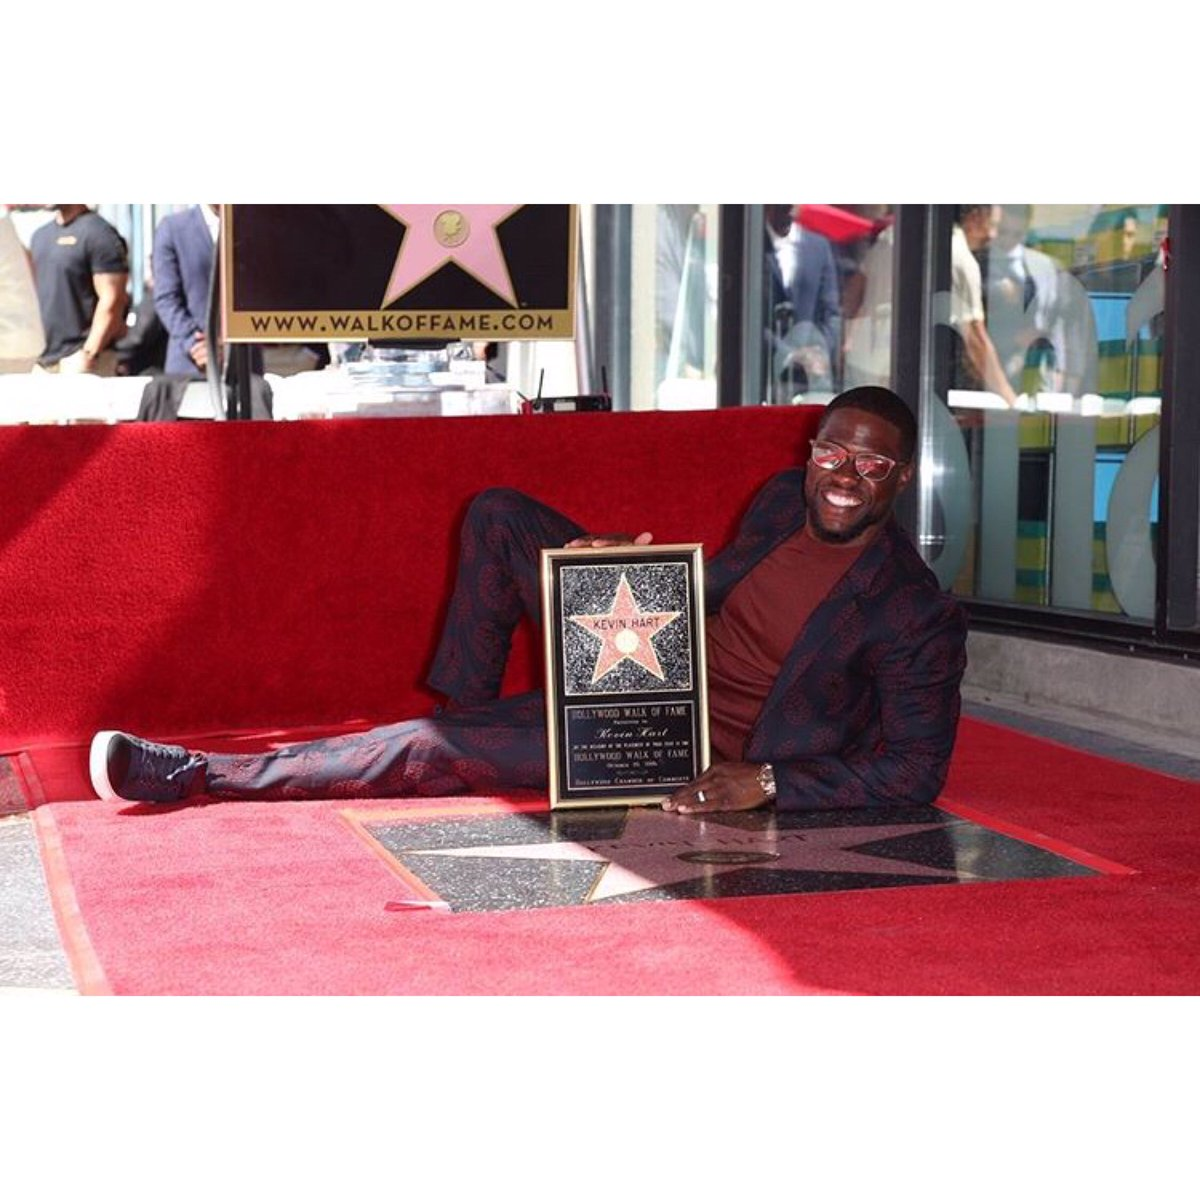 Congratulations to @kevinhart4real, who received his star on the Hollywood Walk of Fame.  Photo credit: David Buchan https://t.co/CpcvFzIz9b